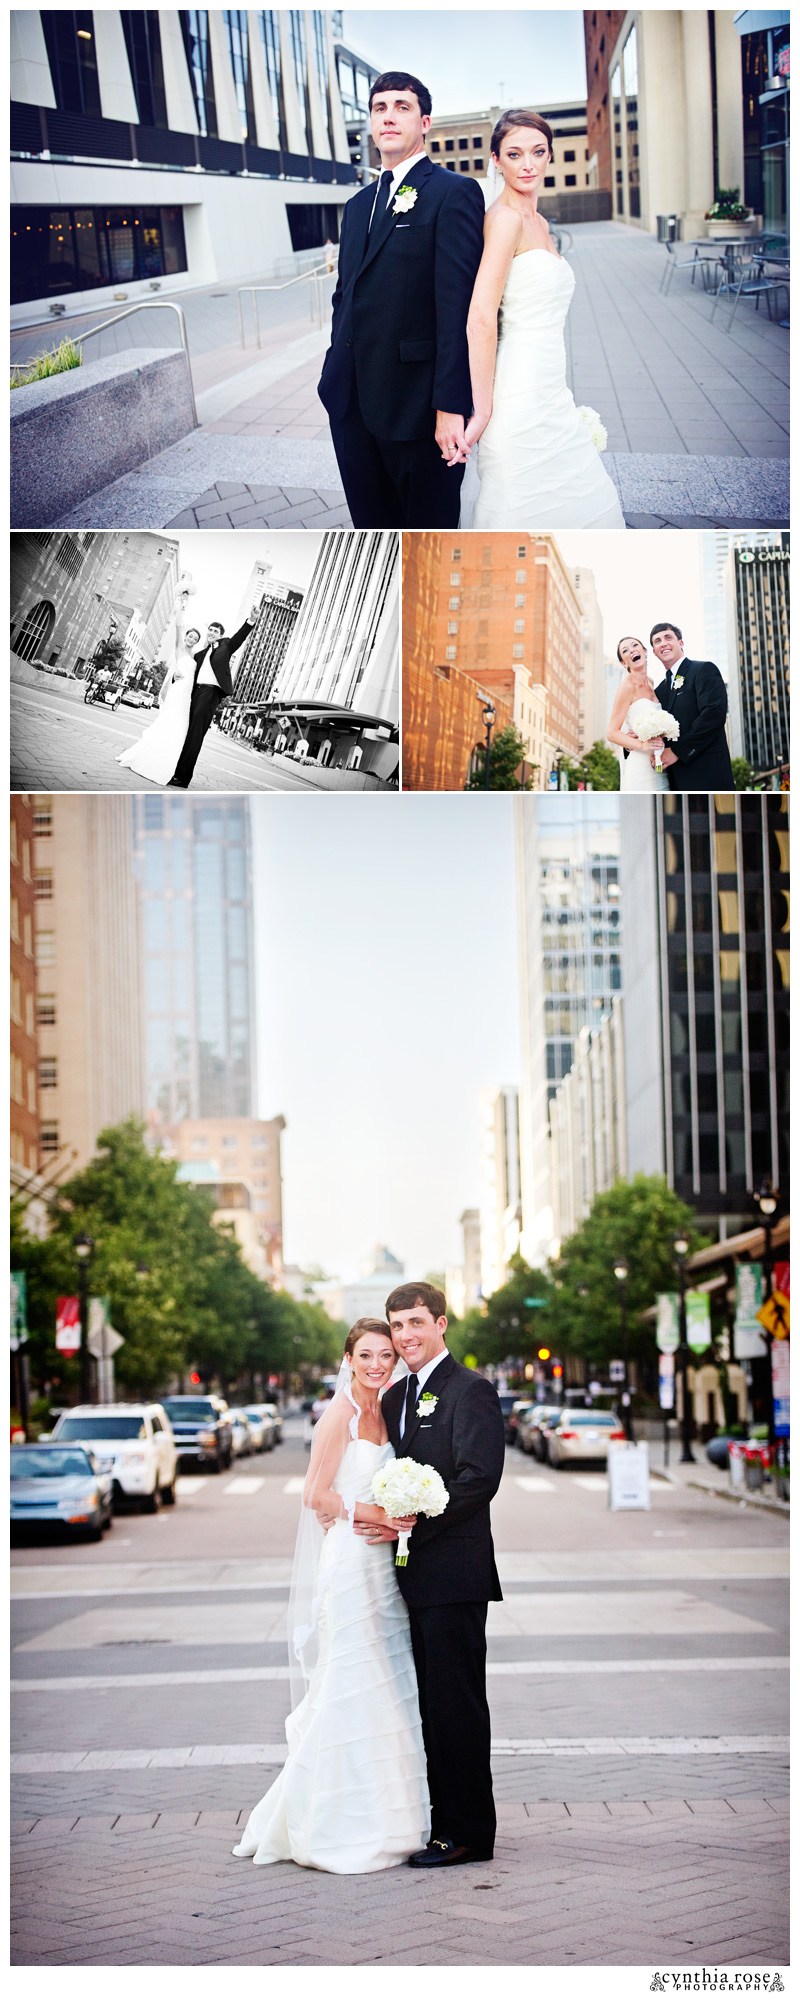 Downtown Raleigh wedding photographer